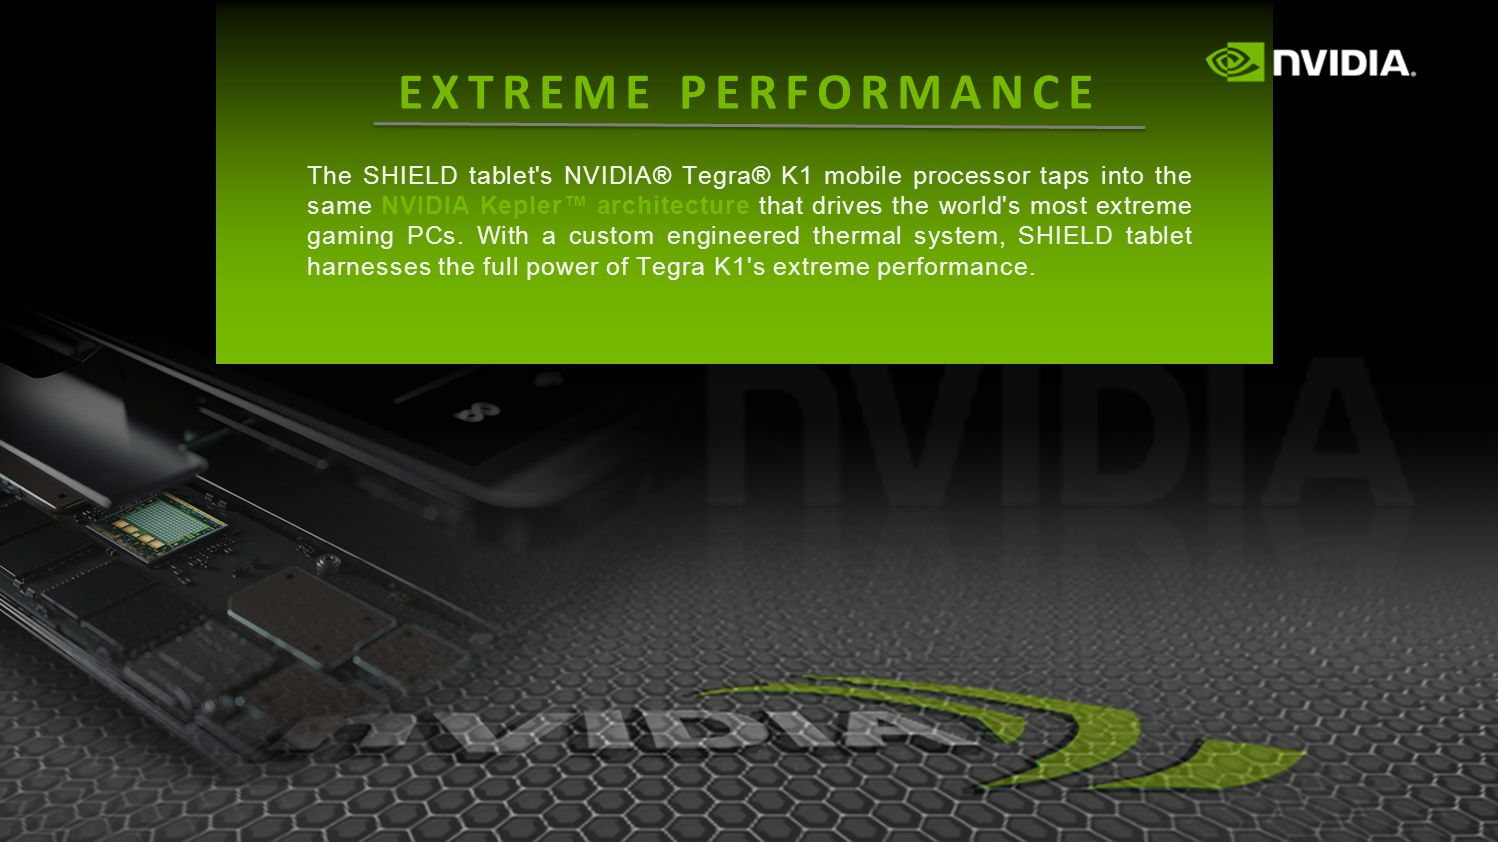 Tegra K1 is the first-ever console-class mobile processor